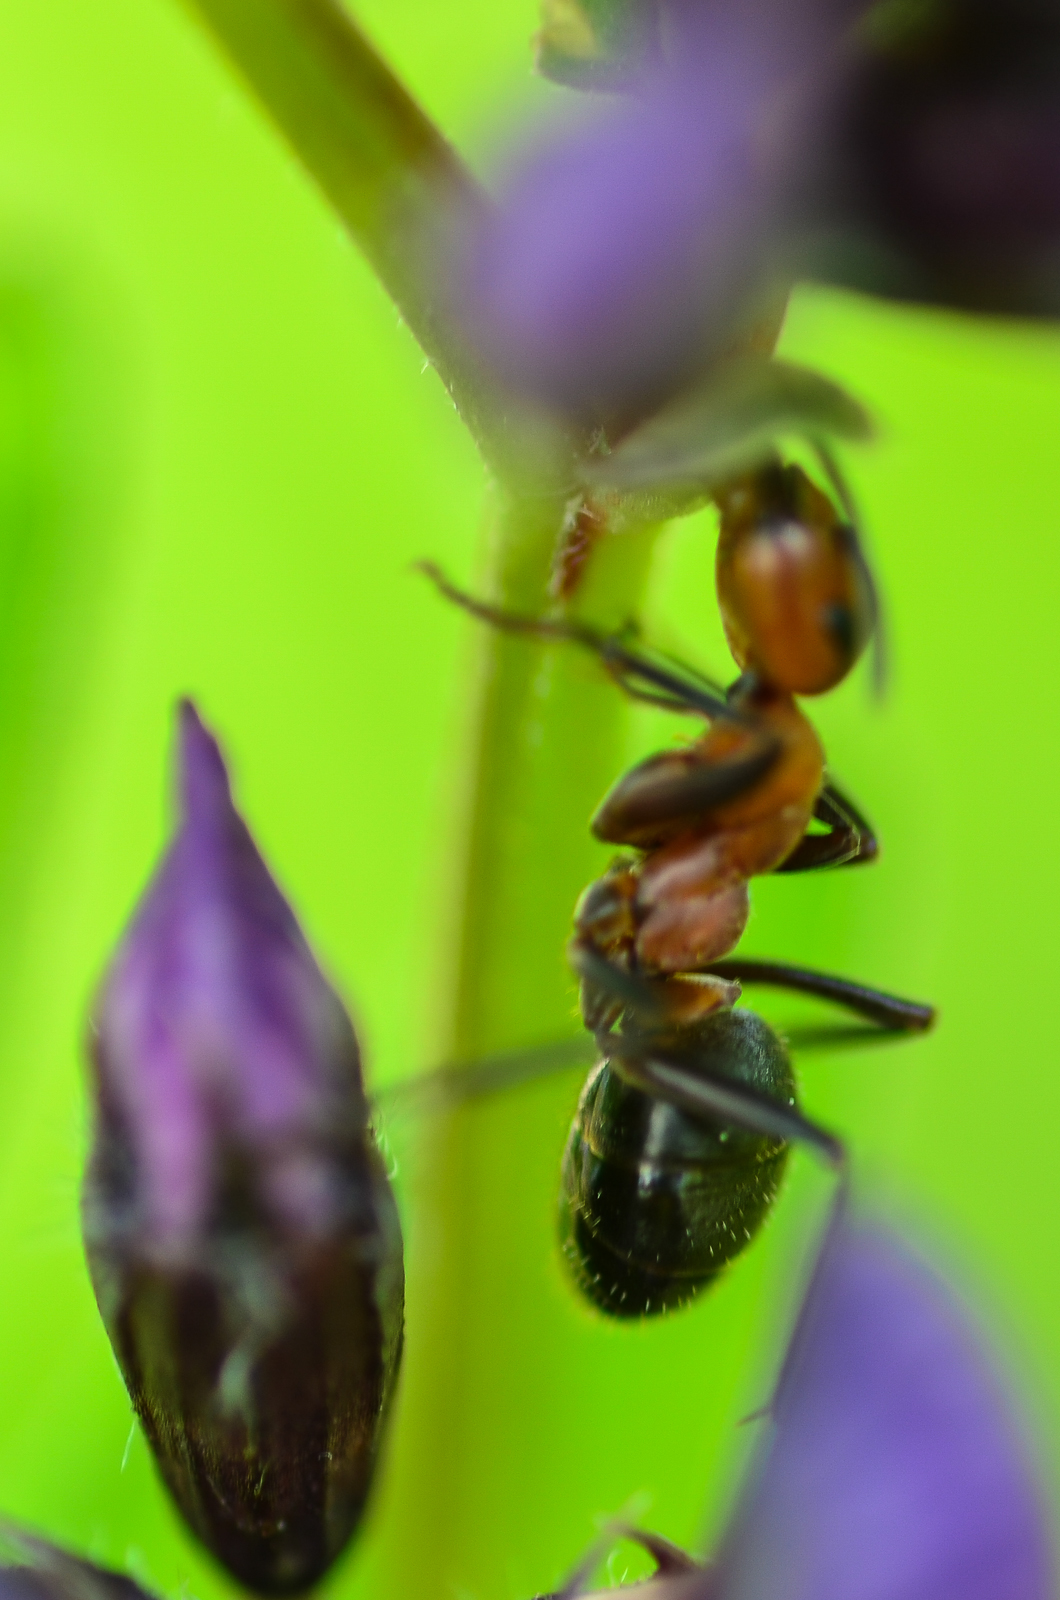 ant macro photography wallpaper - photo #16